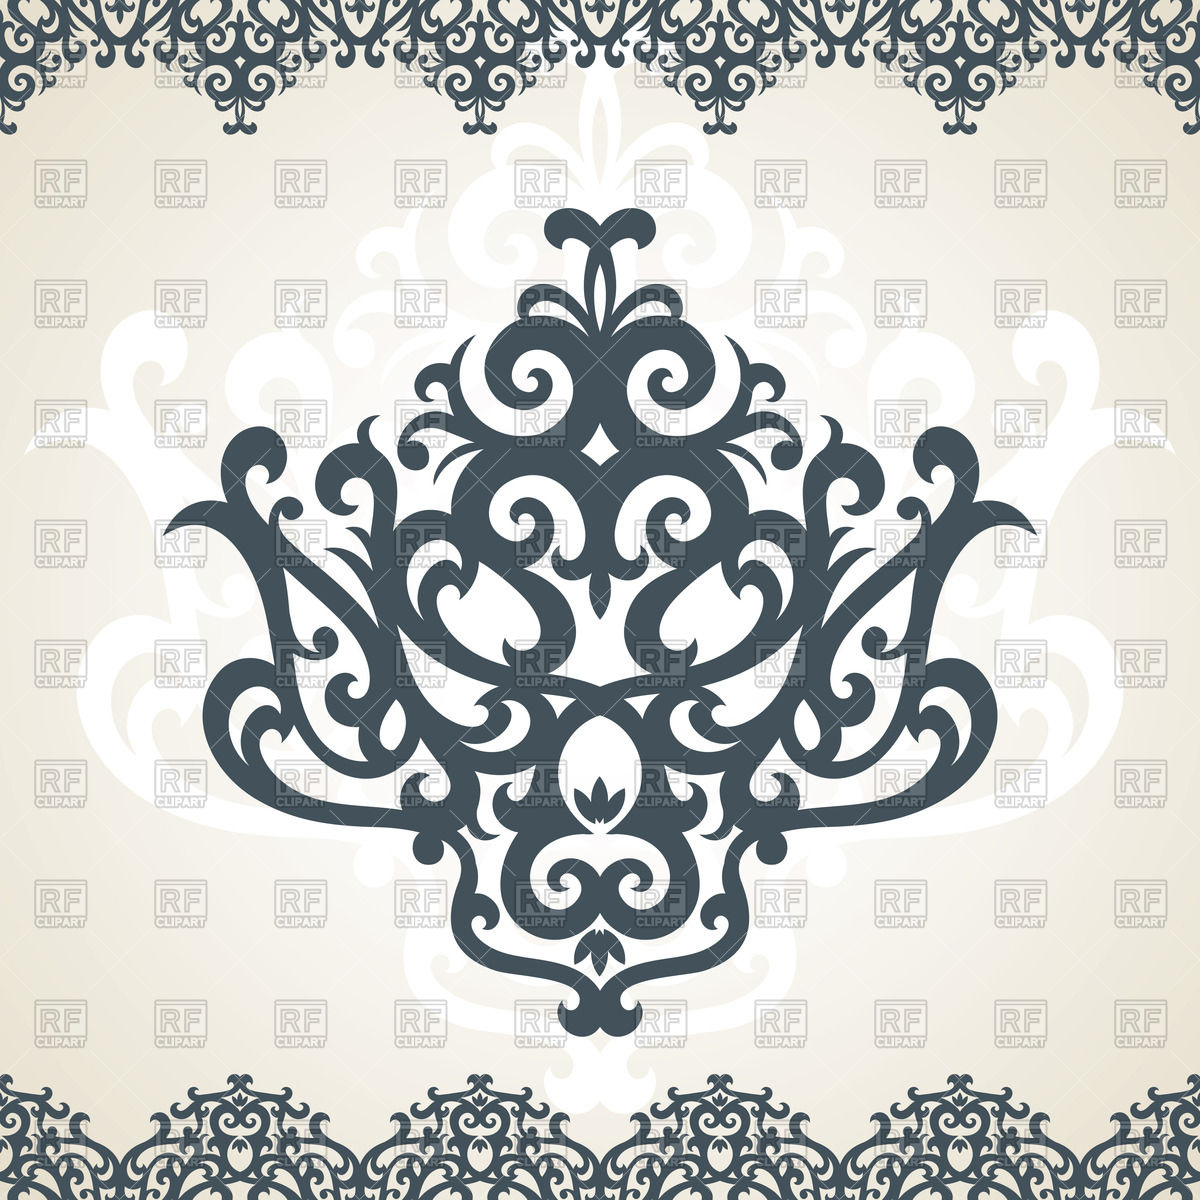 1200x1200 Damask Ornament And Border Vector Image Vector Artwork Of